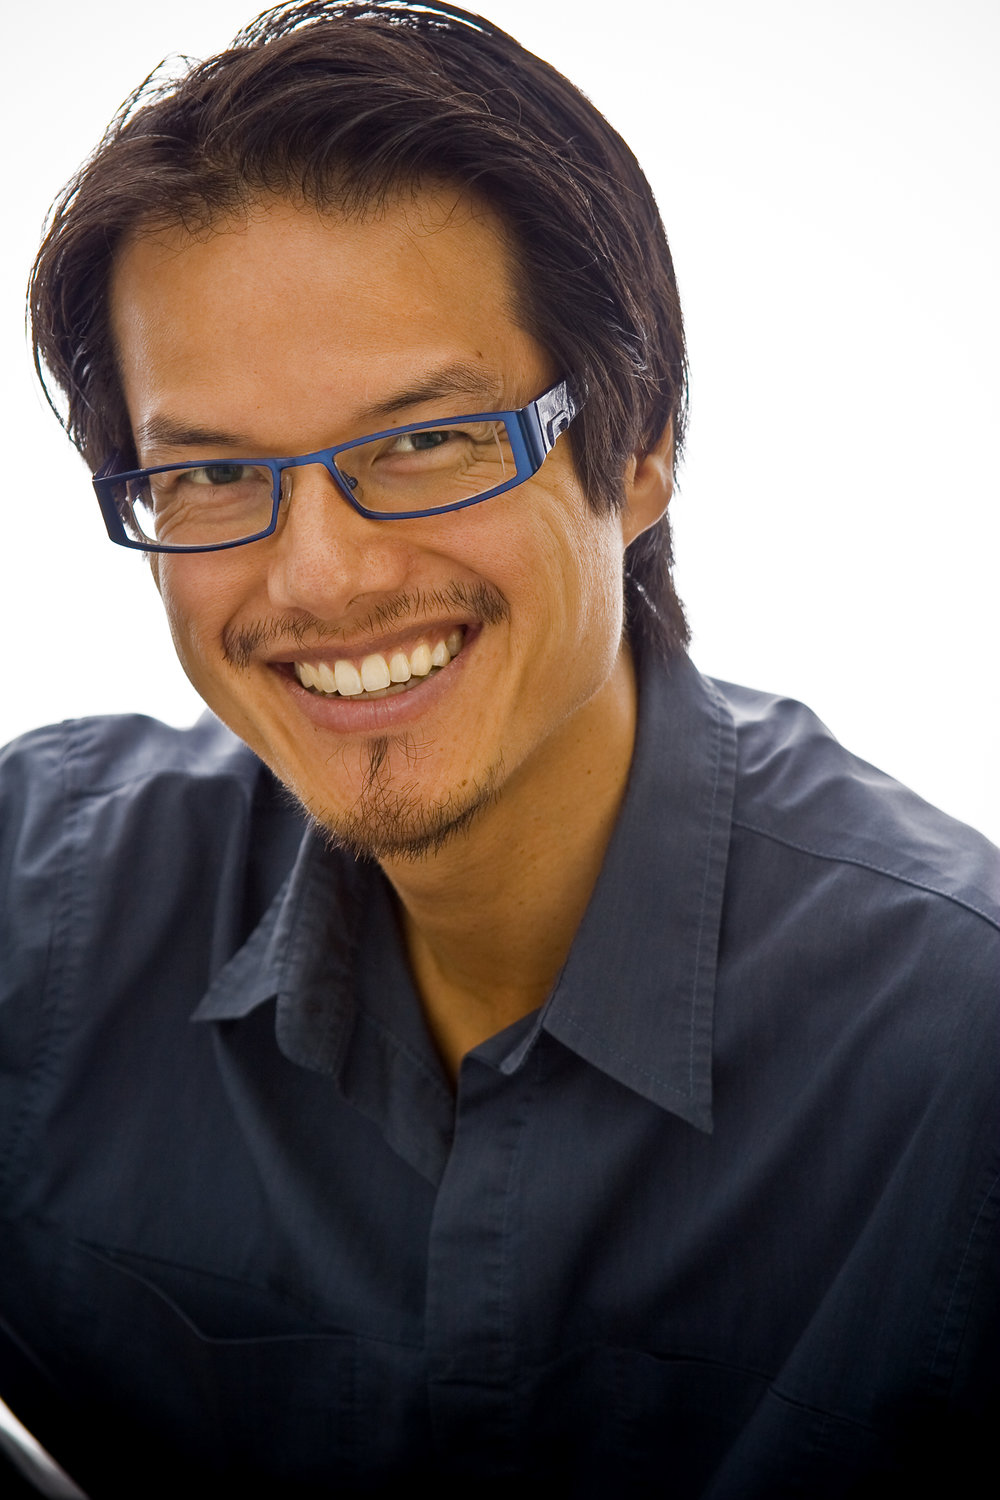 Jon YEO - Executive Speaker Coach - spreading your brand story